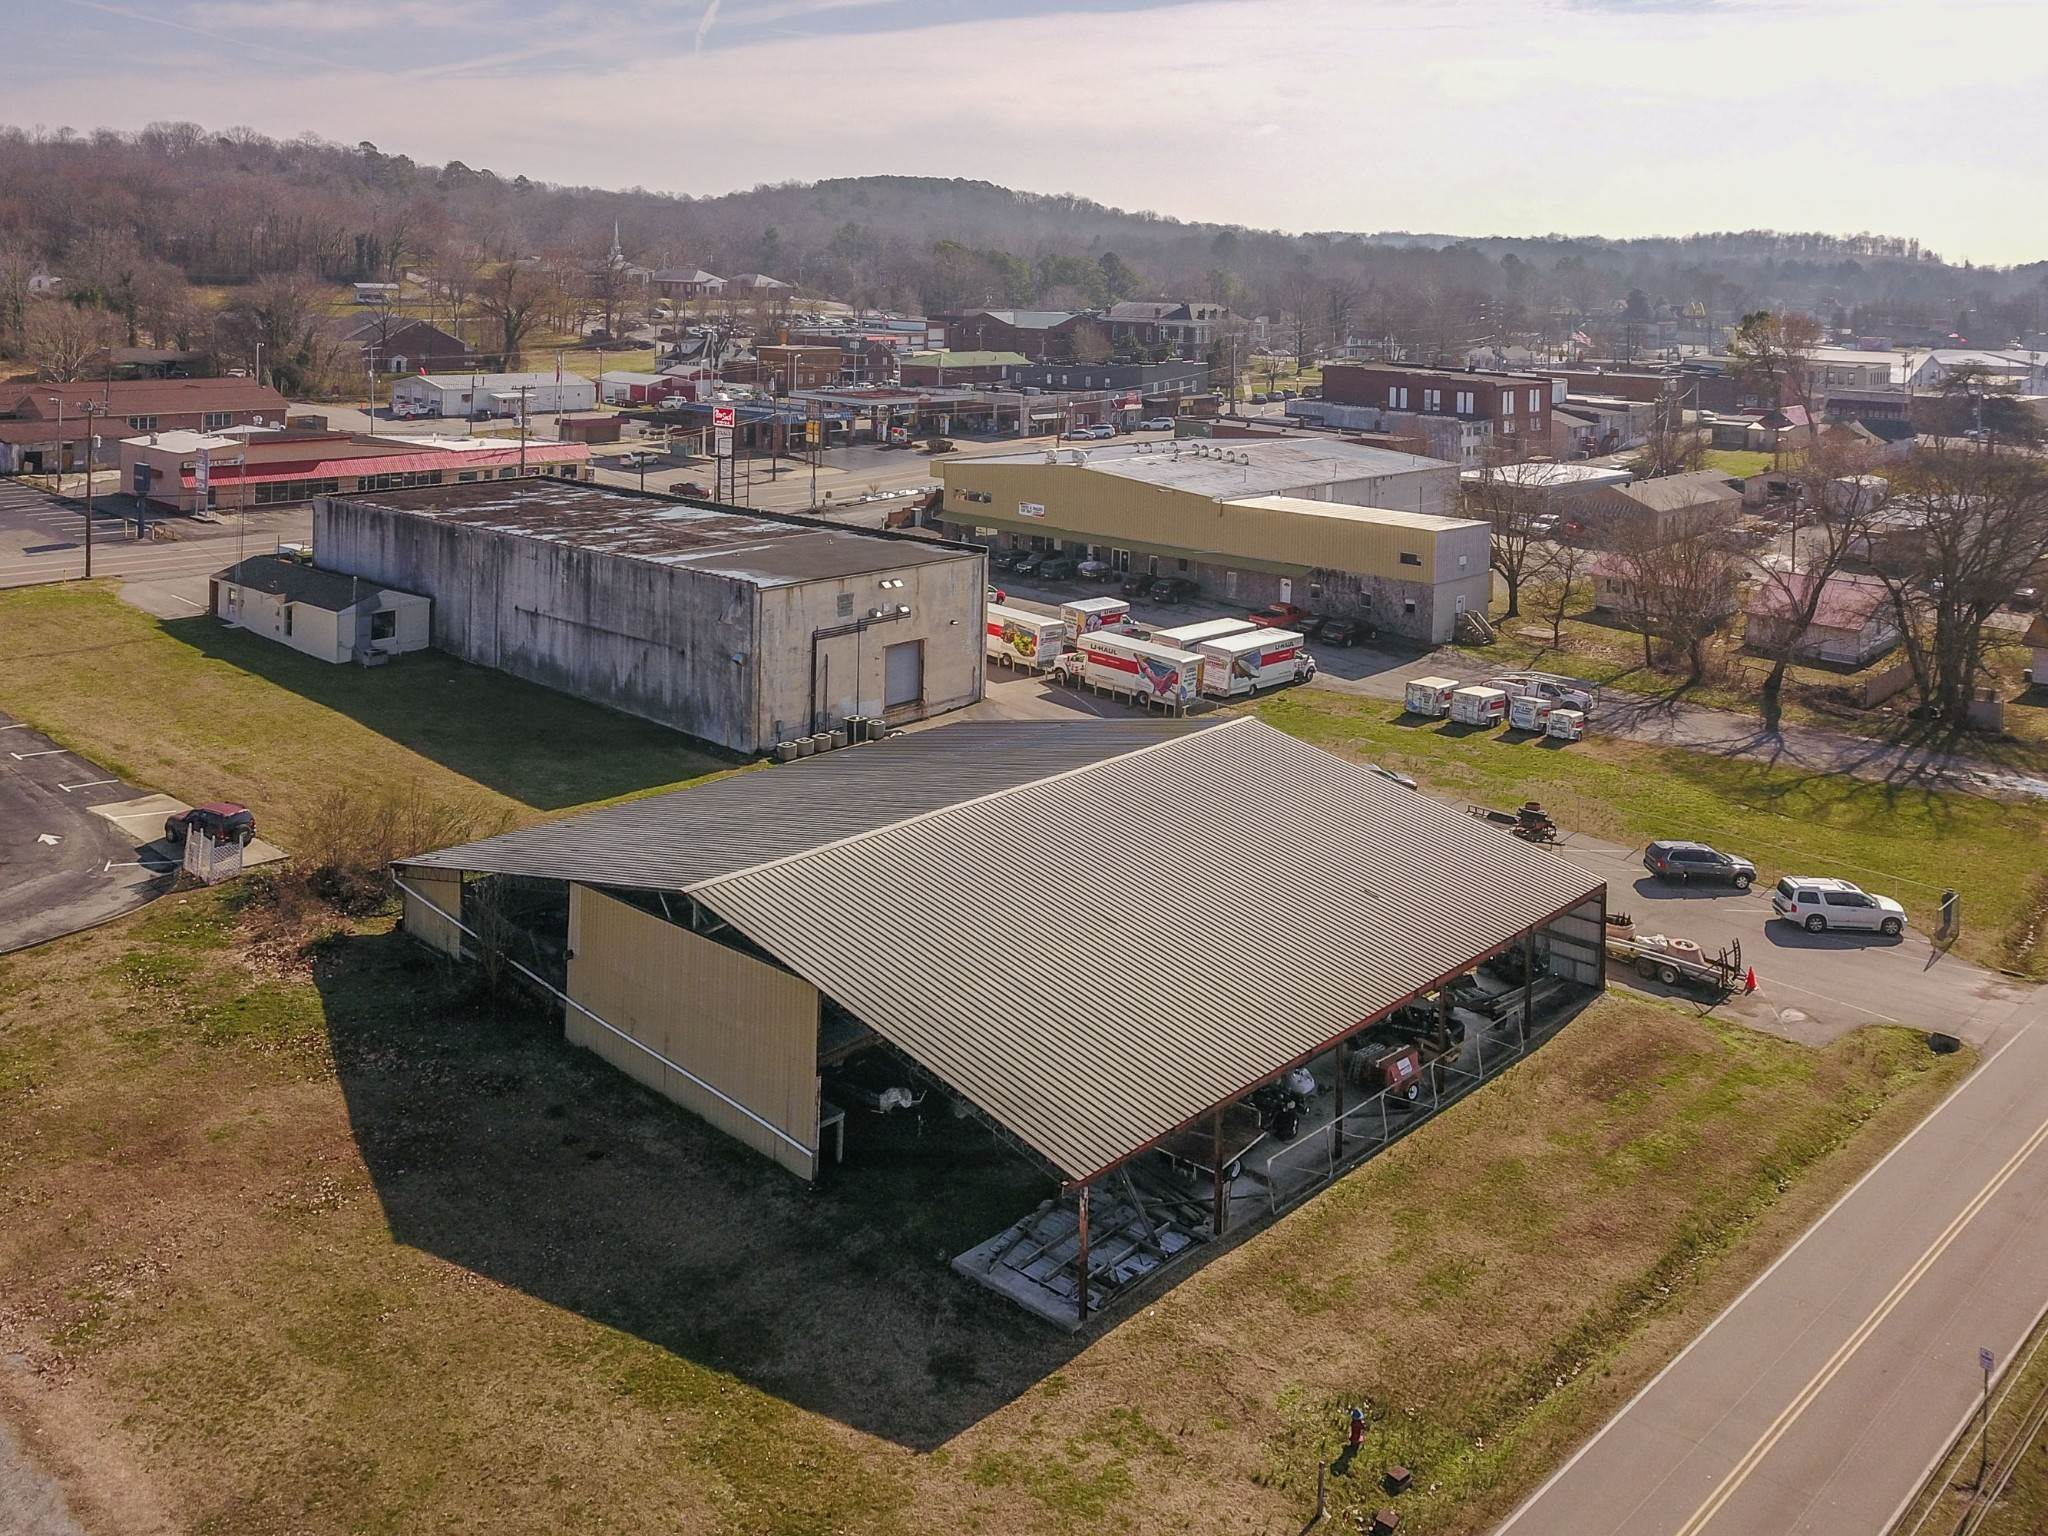 Property for Sale at 208 N. Main Street Ashland City, Tennessee 37015 United States